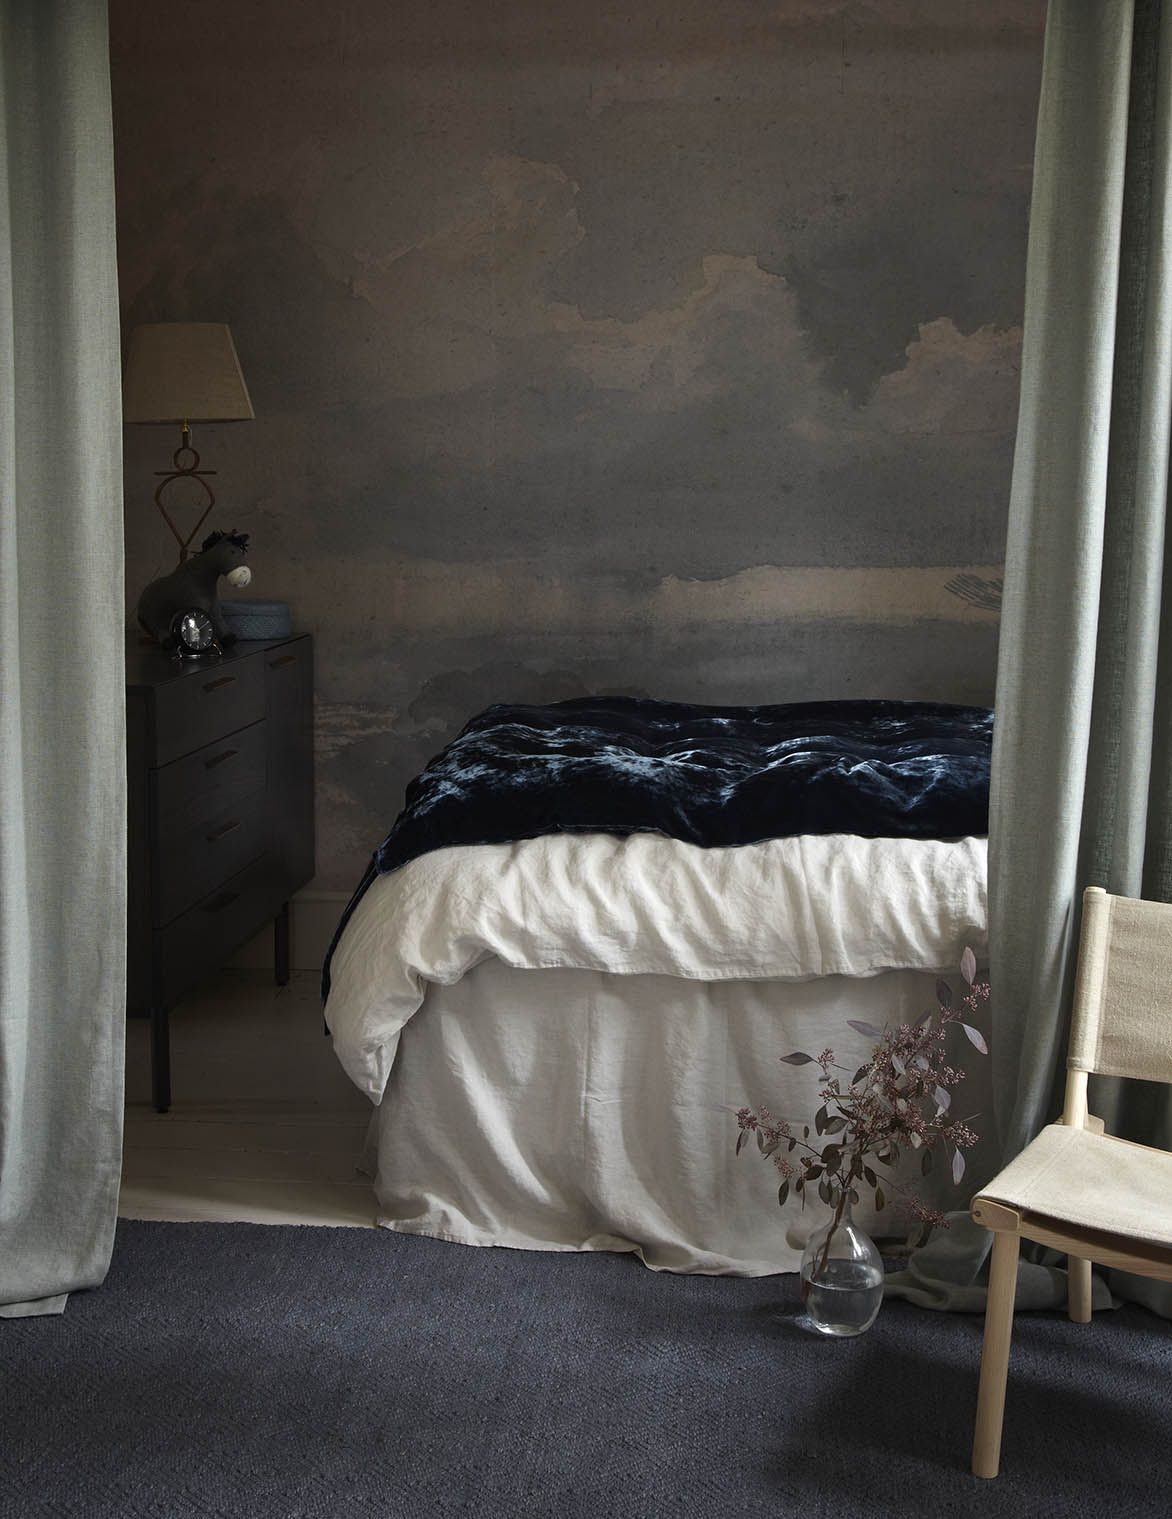 Decorating with pastel shades neednt mean going entirely pale an accent wall in a darker colour such as this deep blue used here serves to bala